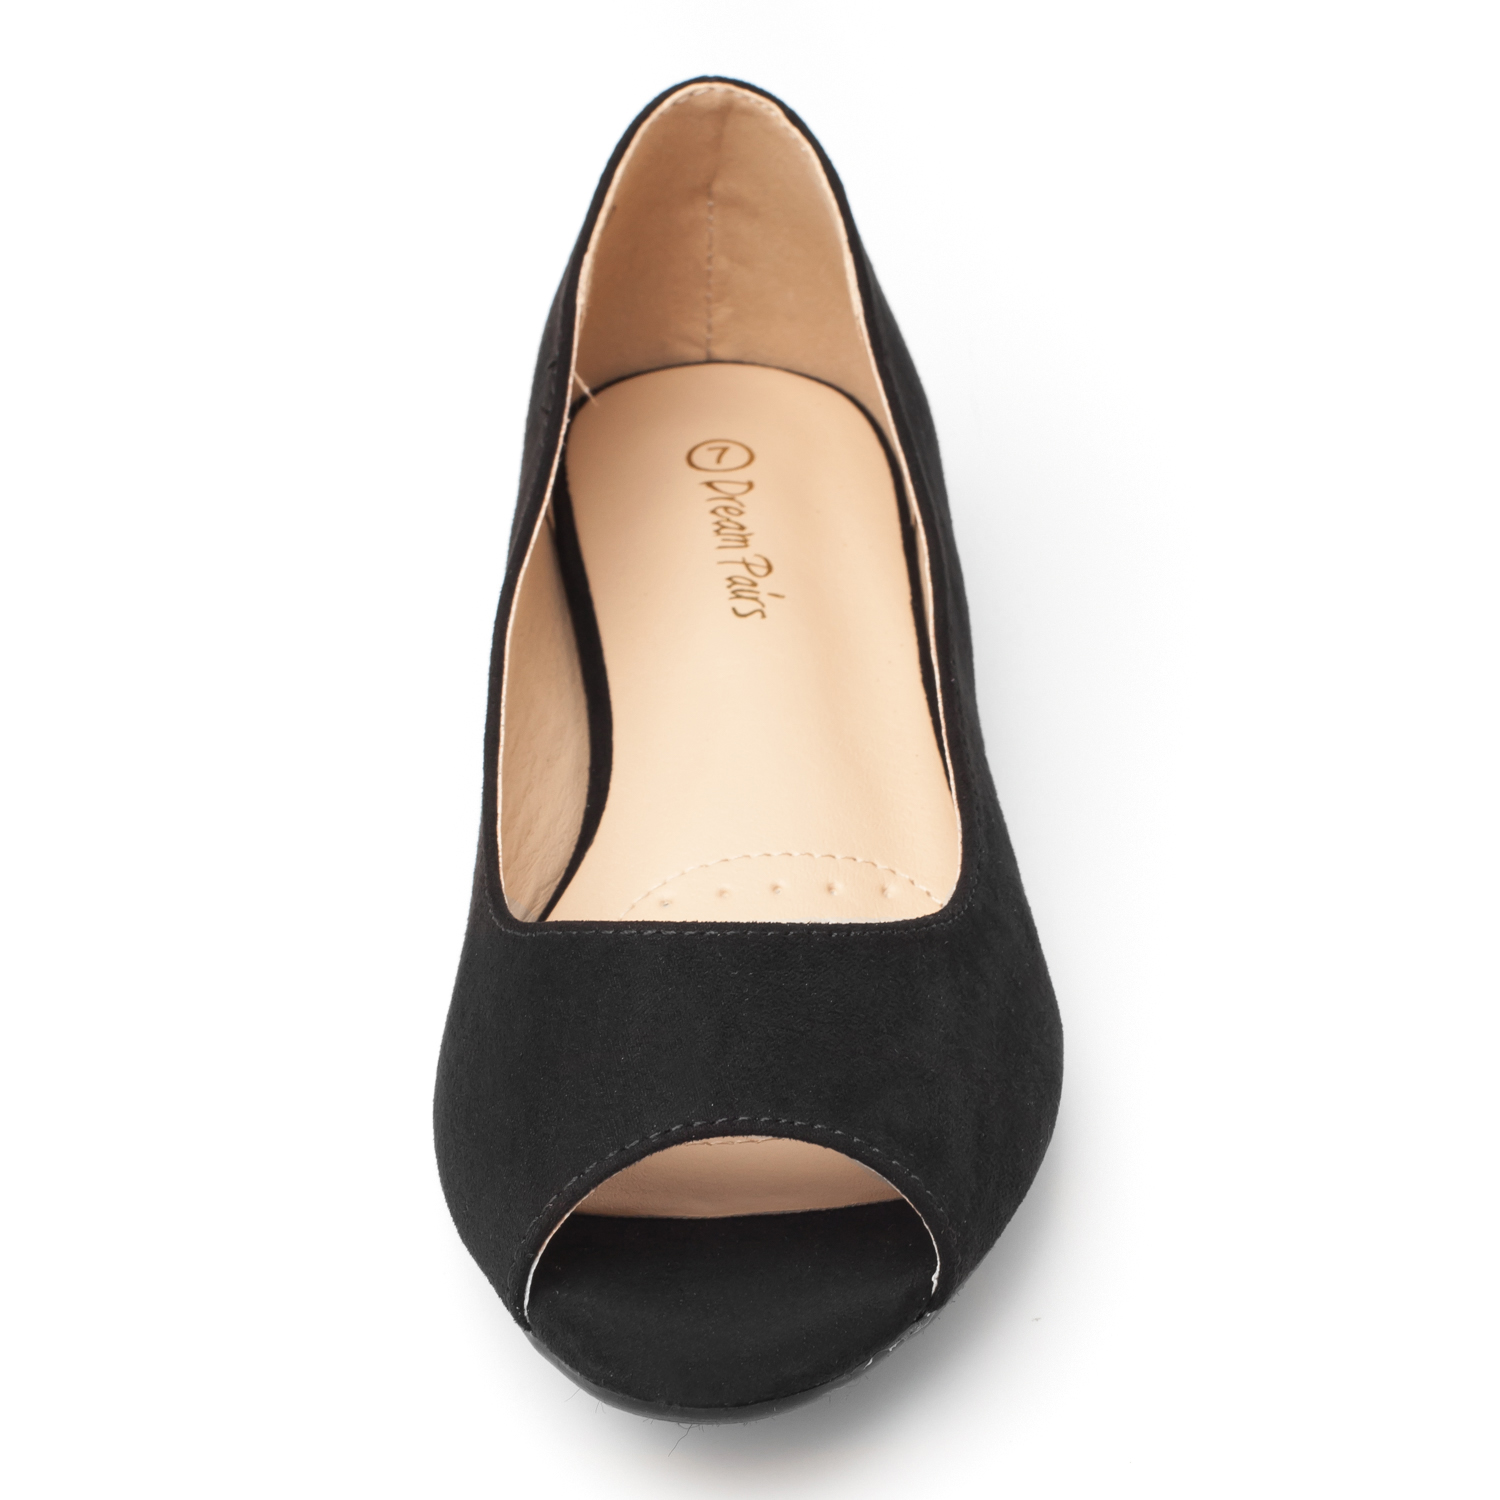 DREAM-PAIRS-Womens-Ballet-Flats-Low-Heel-Open-Toe-Slip-On-Dress-Flat-Shoes thumbnail 45